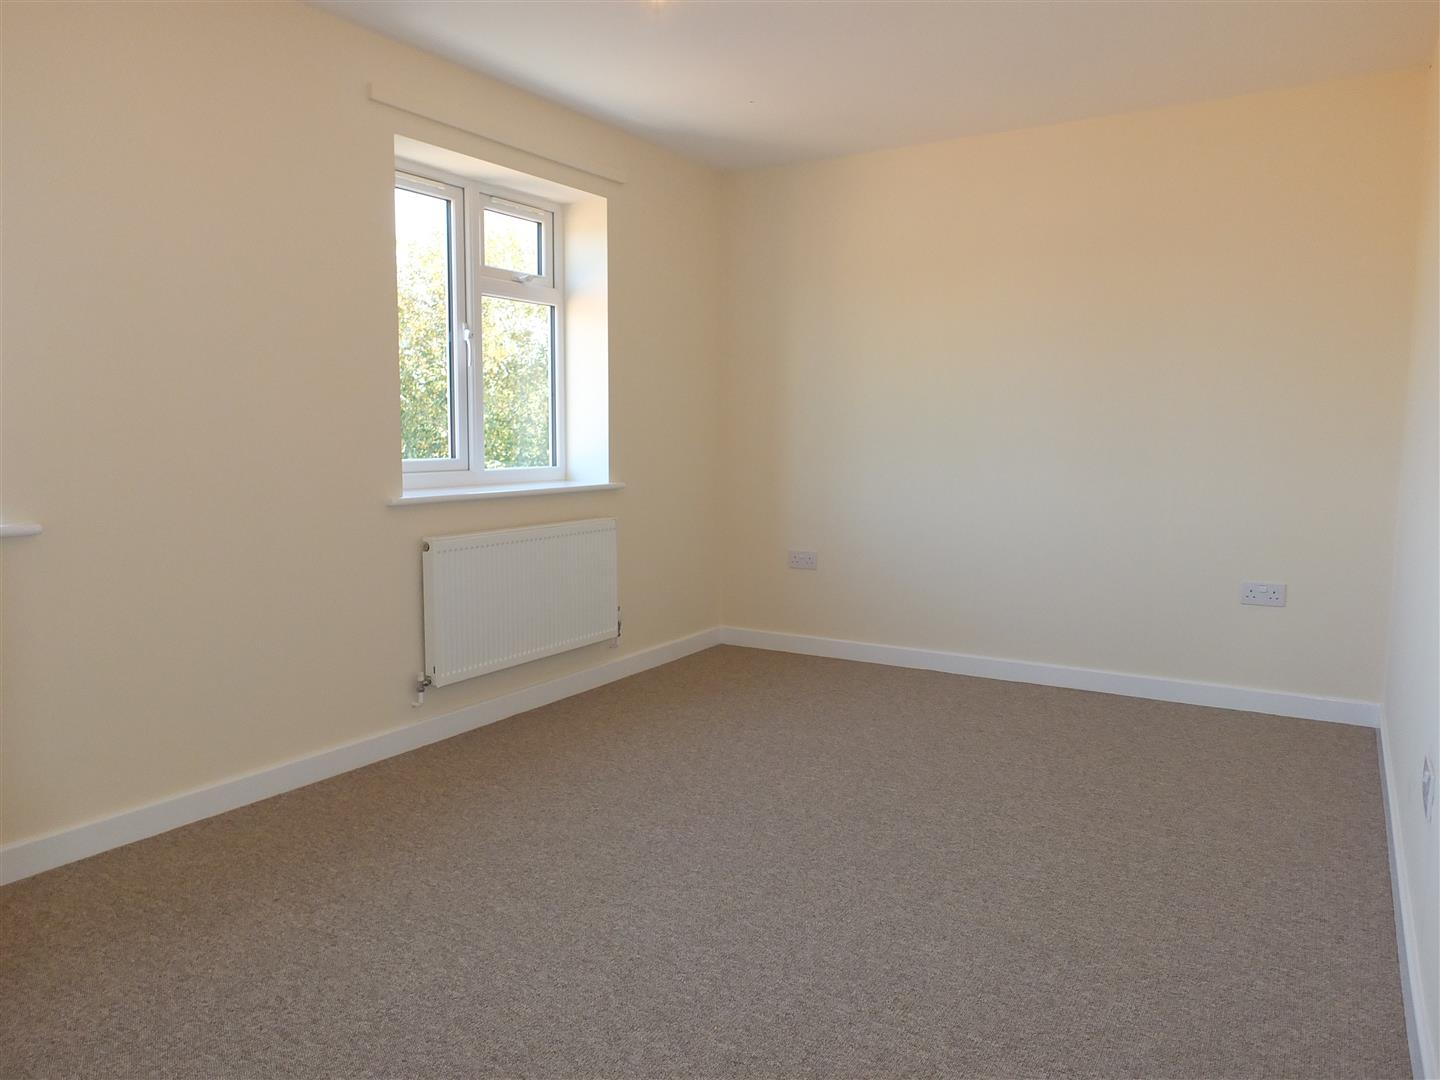 2 bed house to rent in Long Sutton, PE12 9LE 6